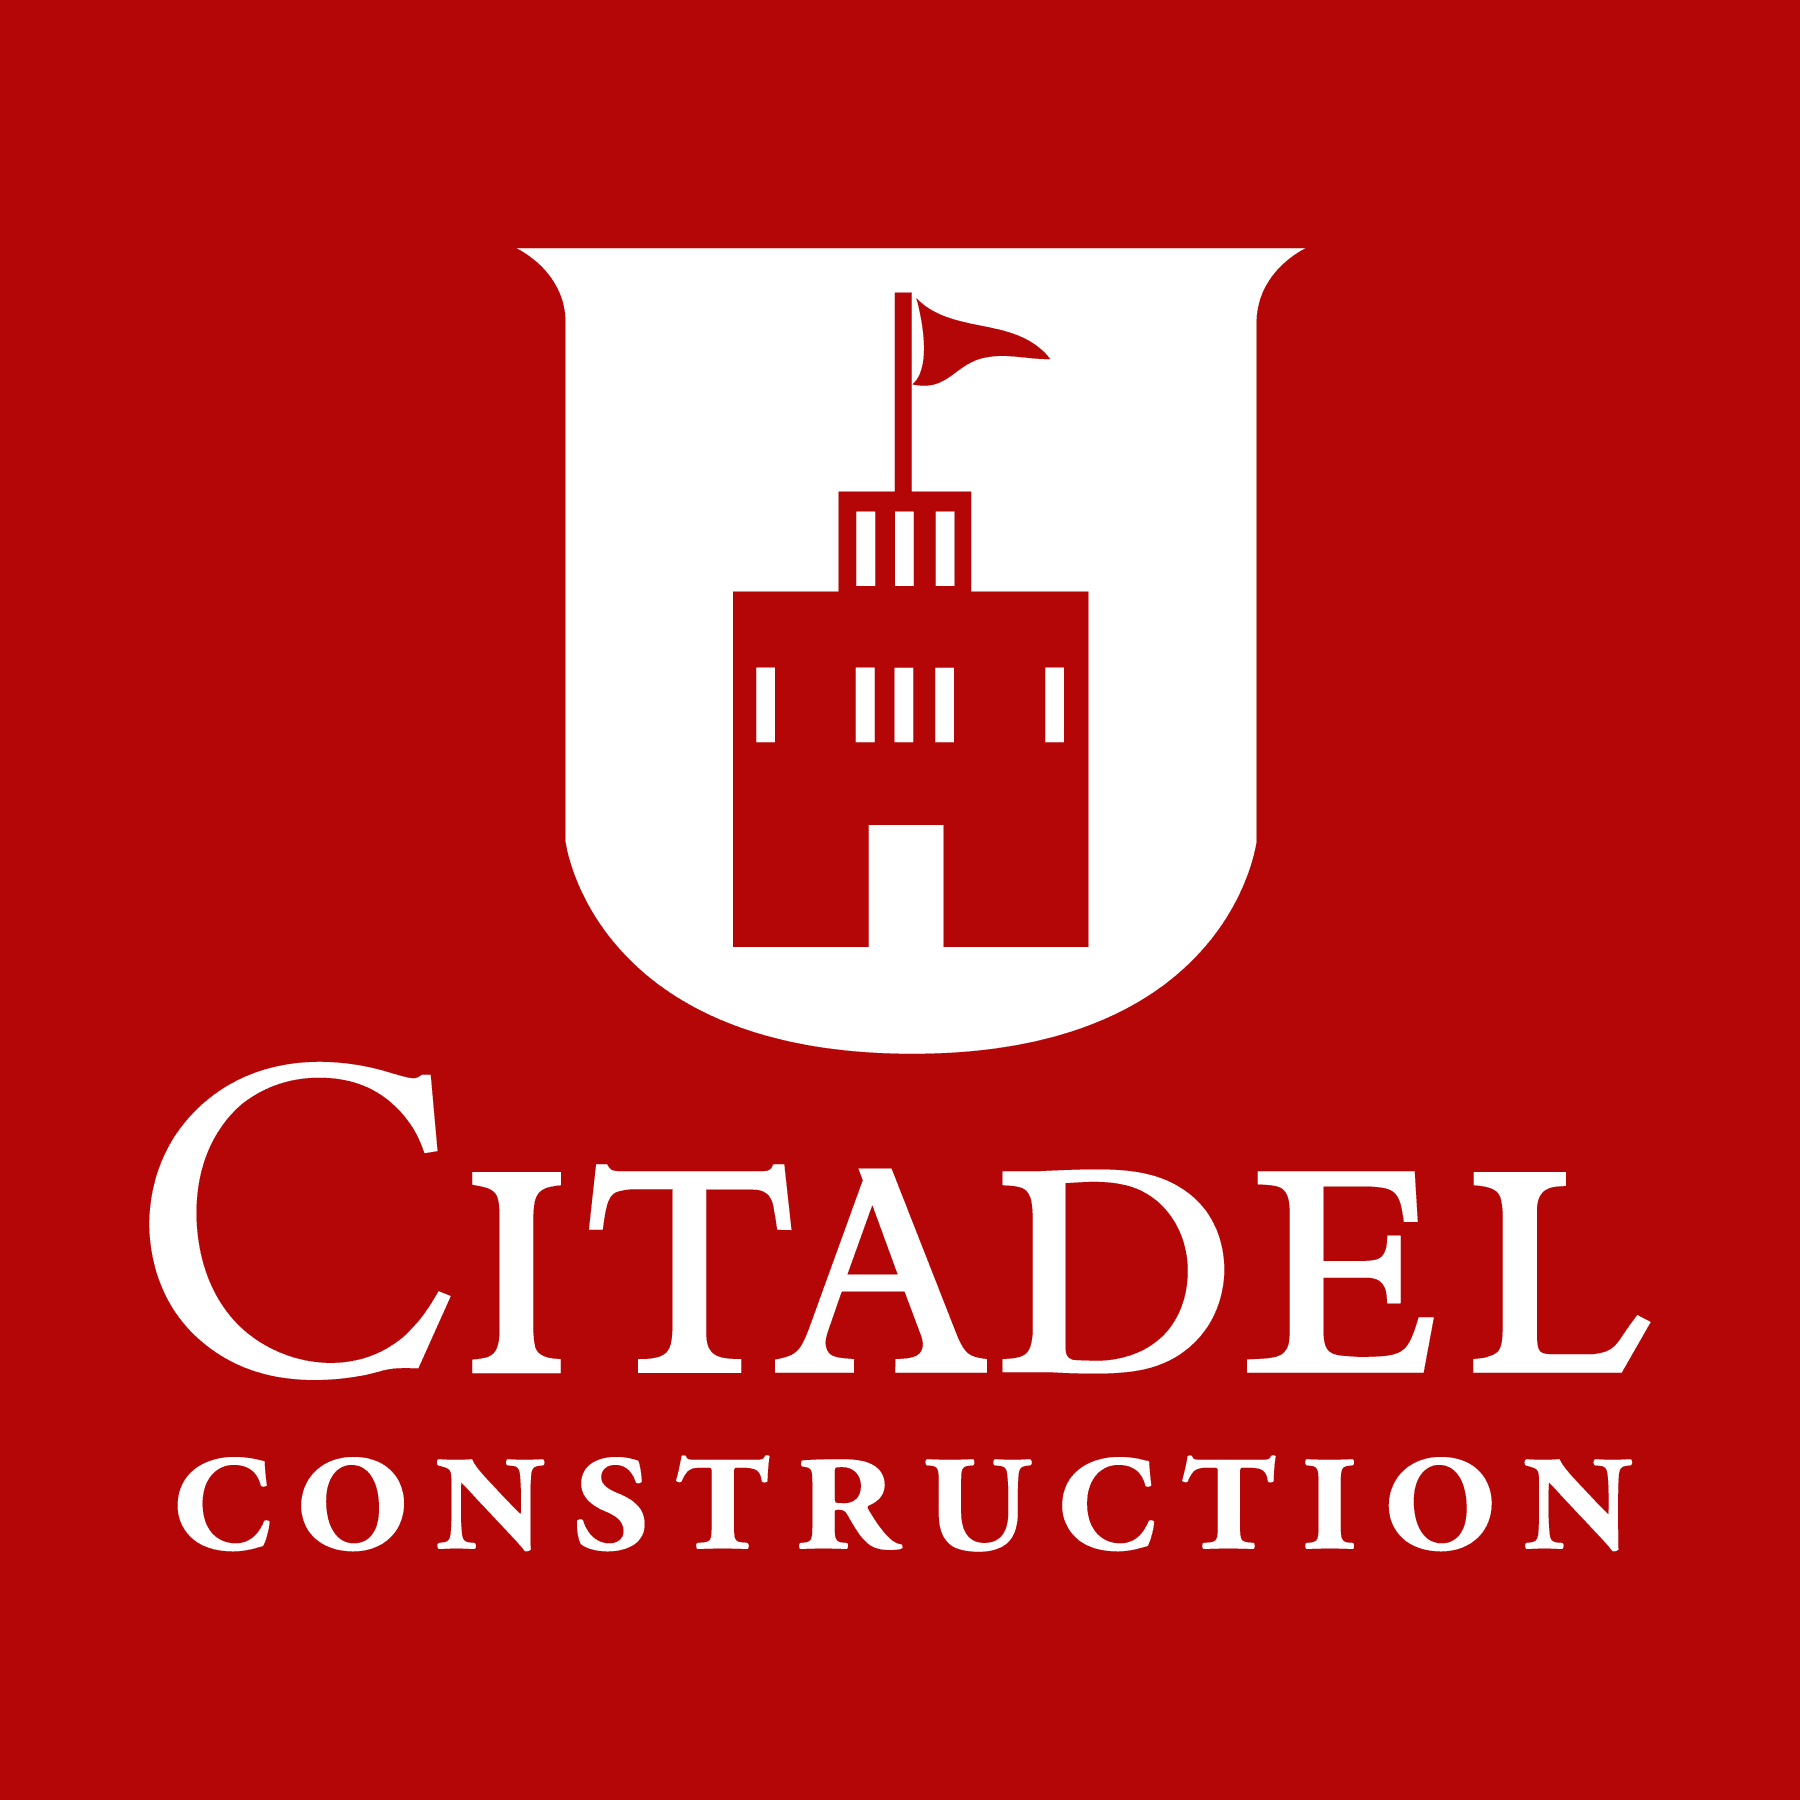 Citadel Construction Sevierville, TN